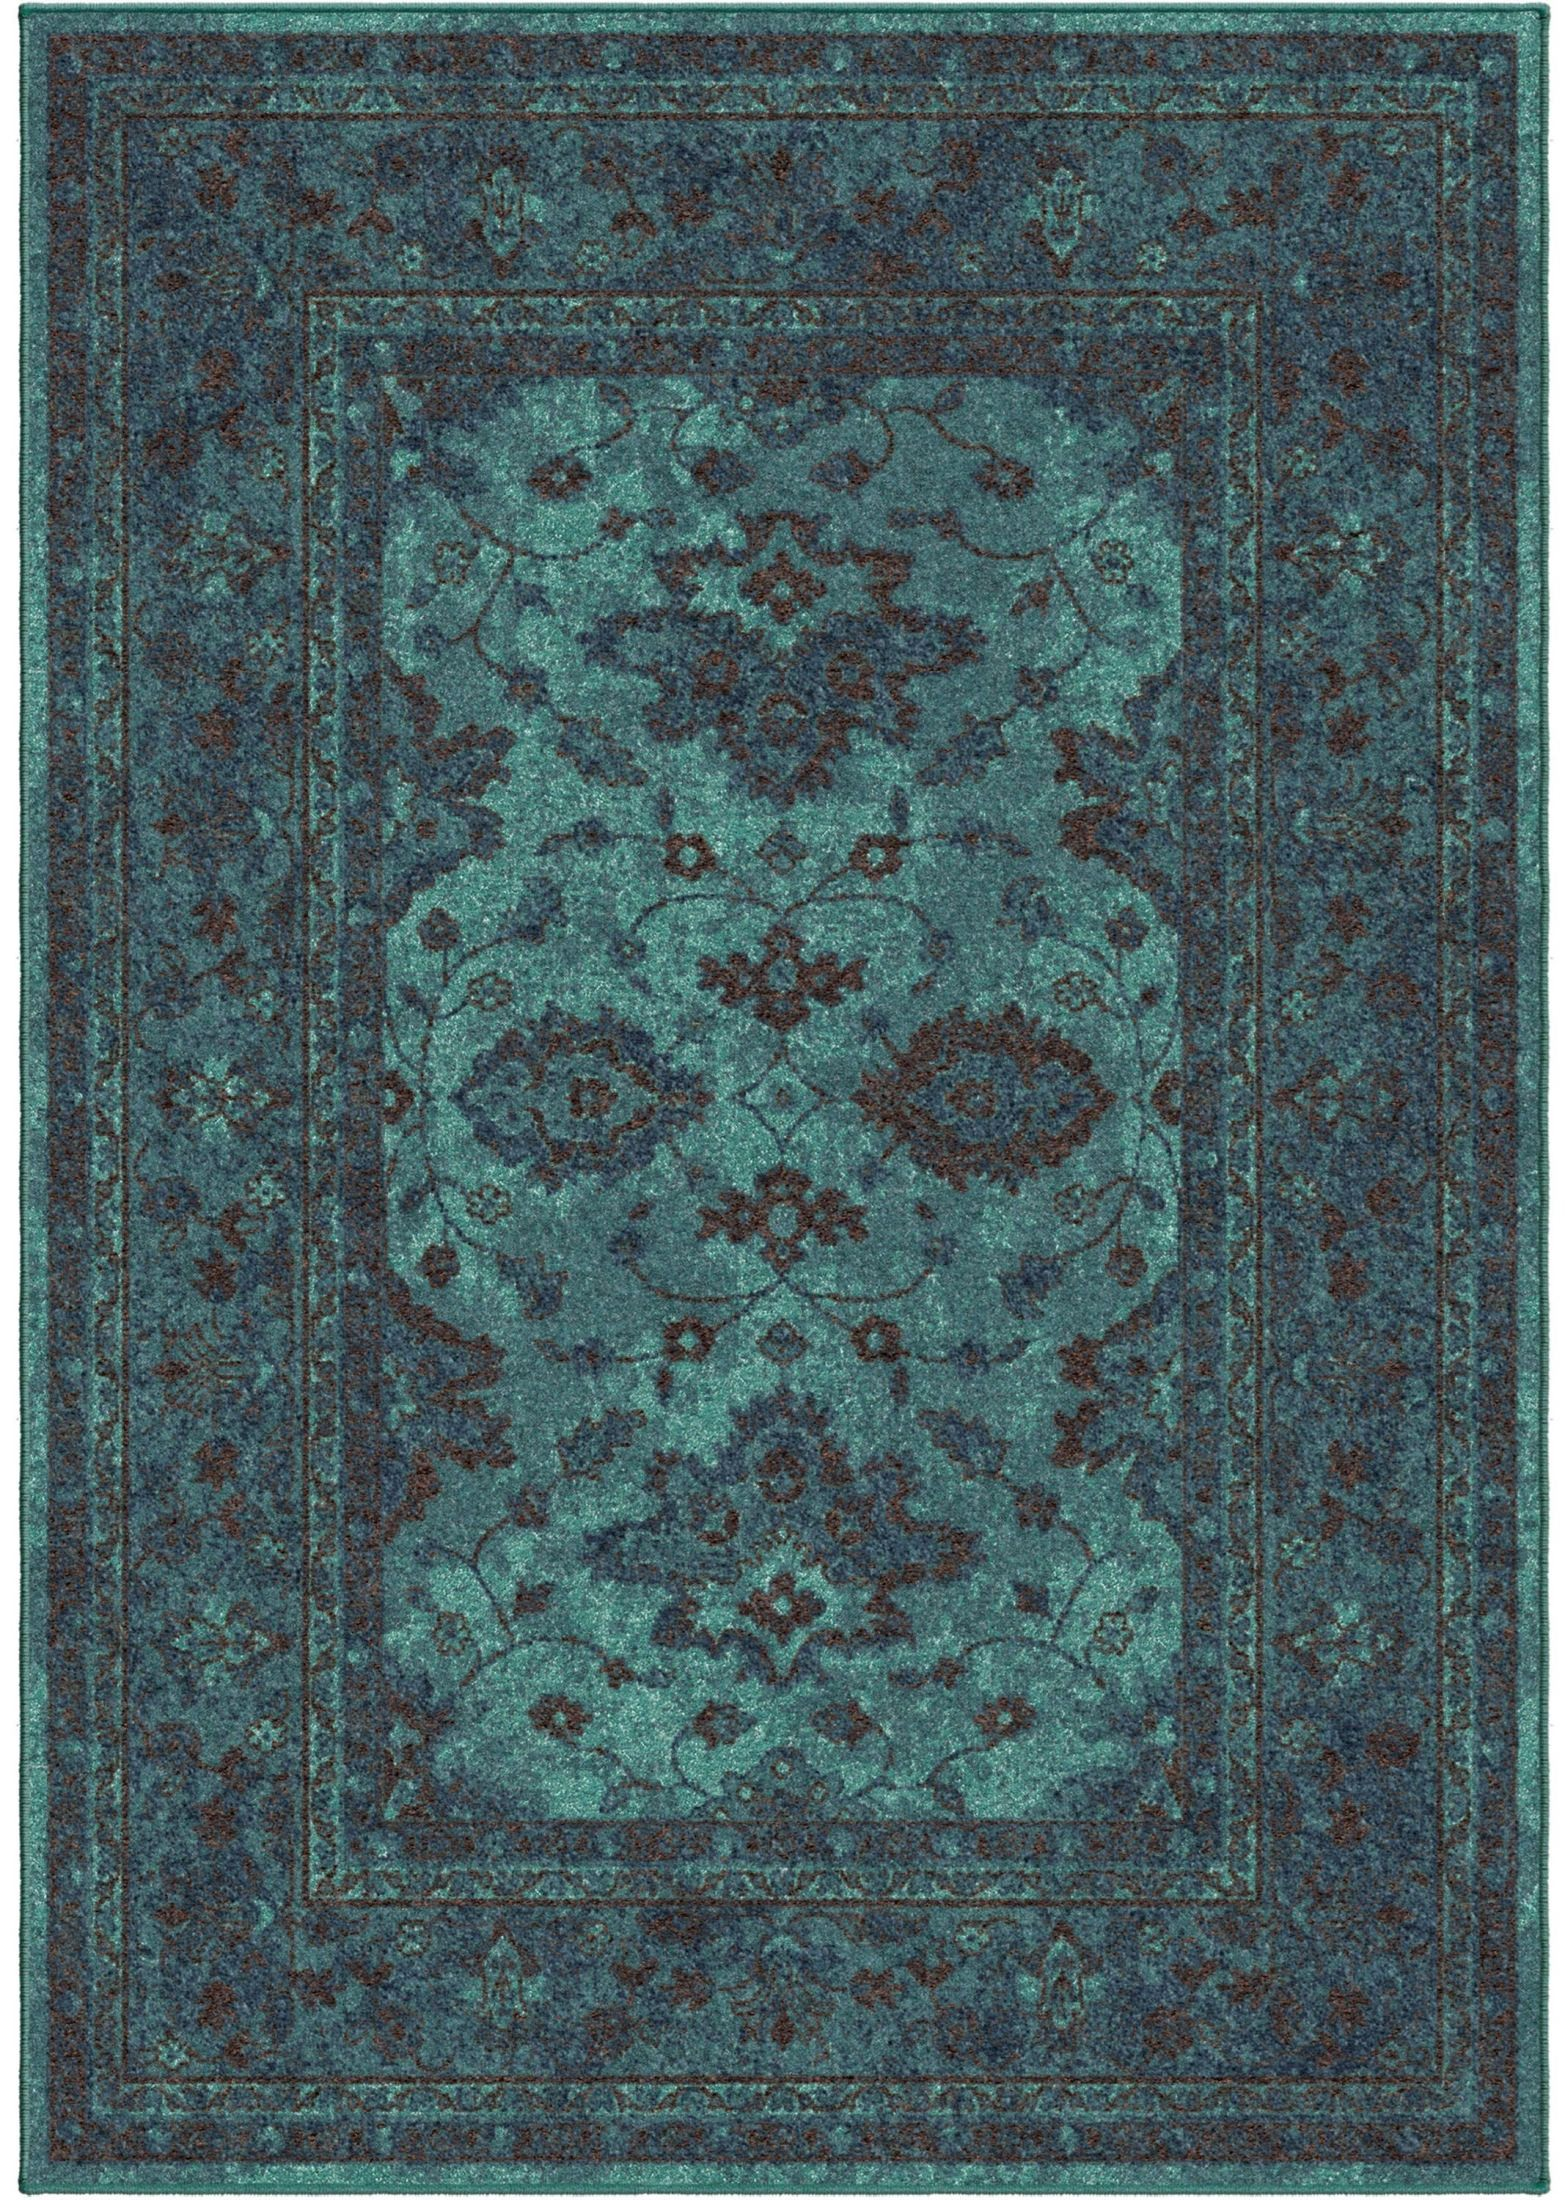 Spoleto bright color modern ethnicagra blue large area rug for Bright blue area rug